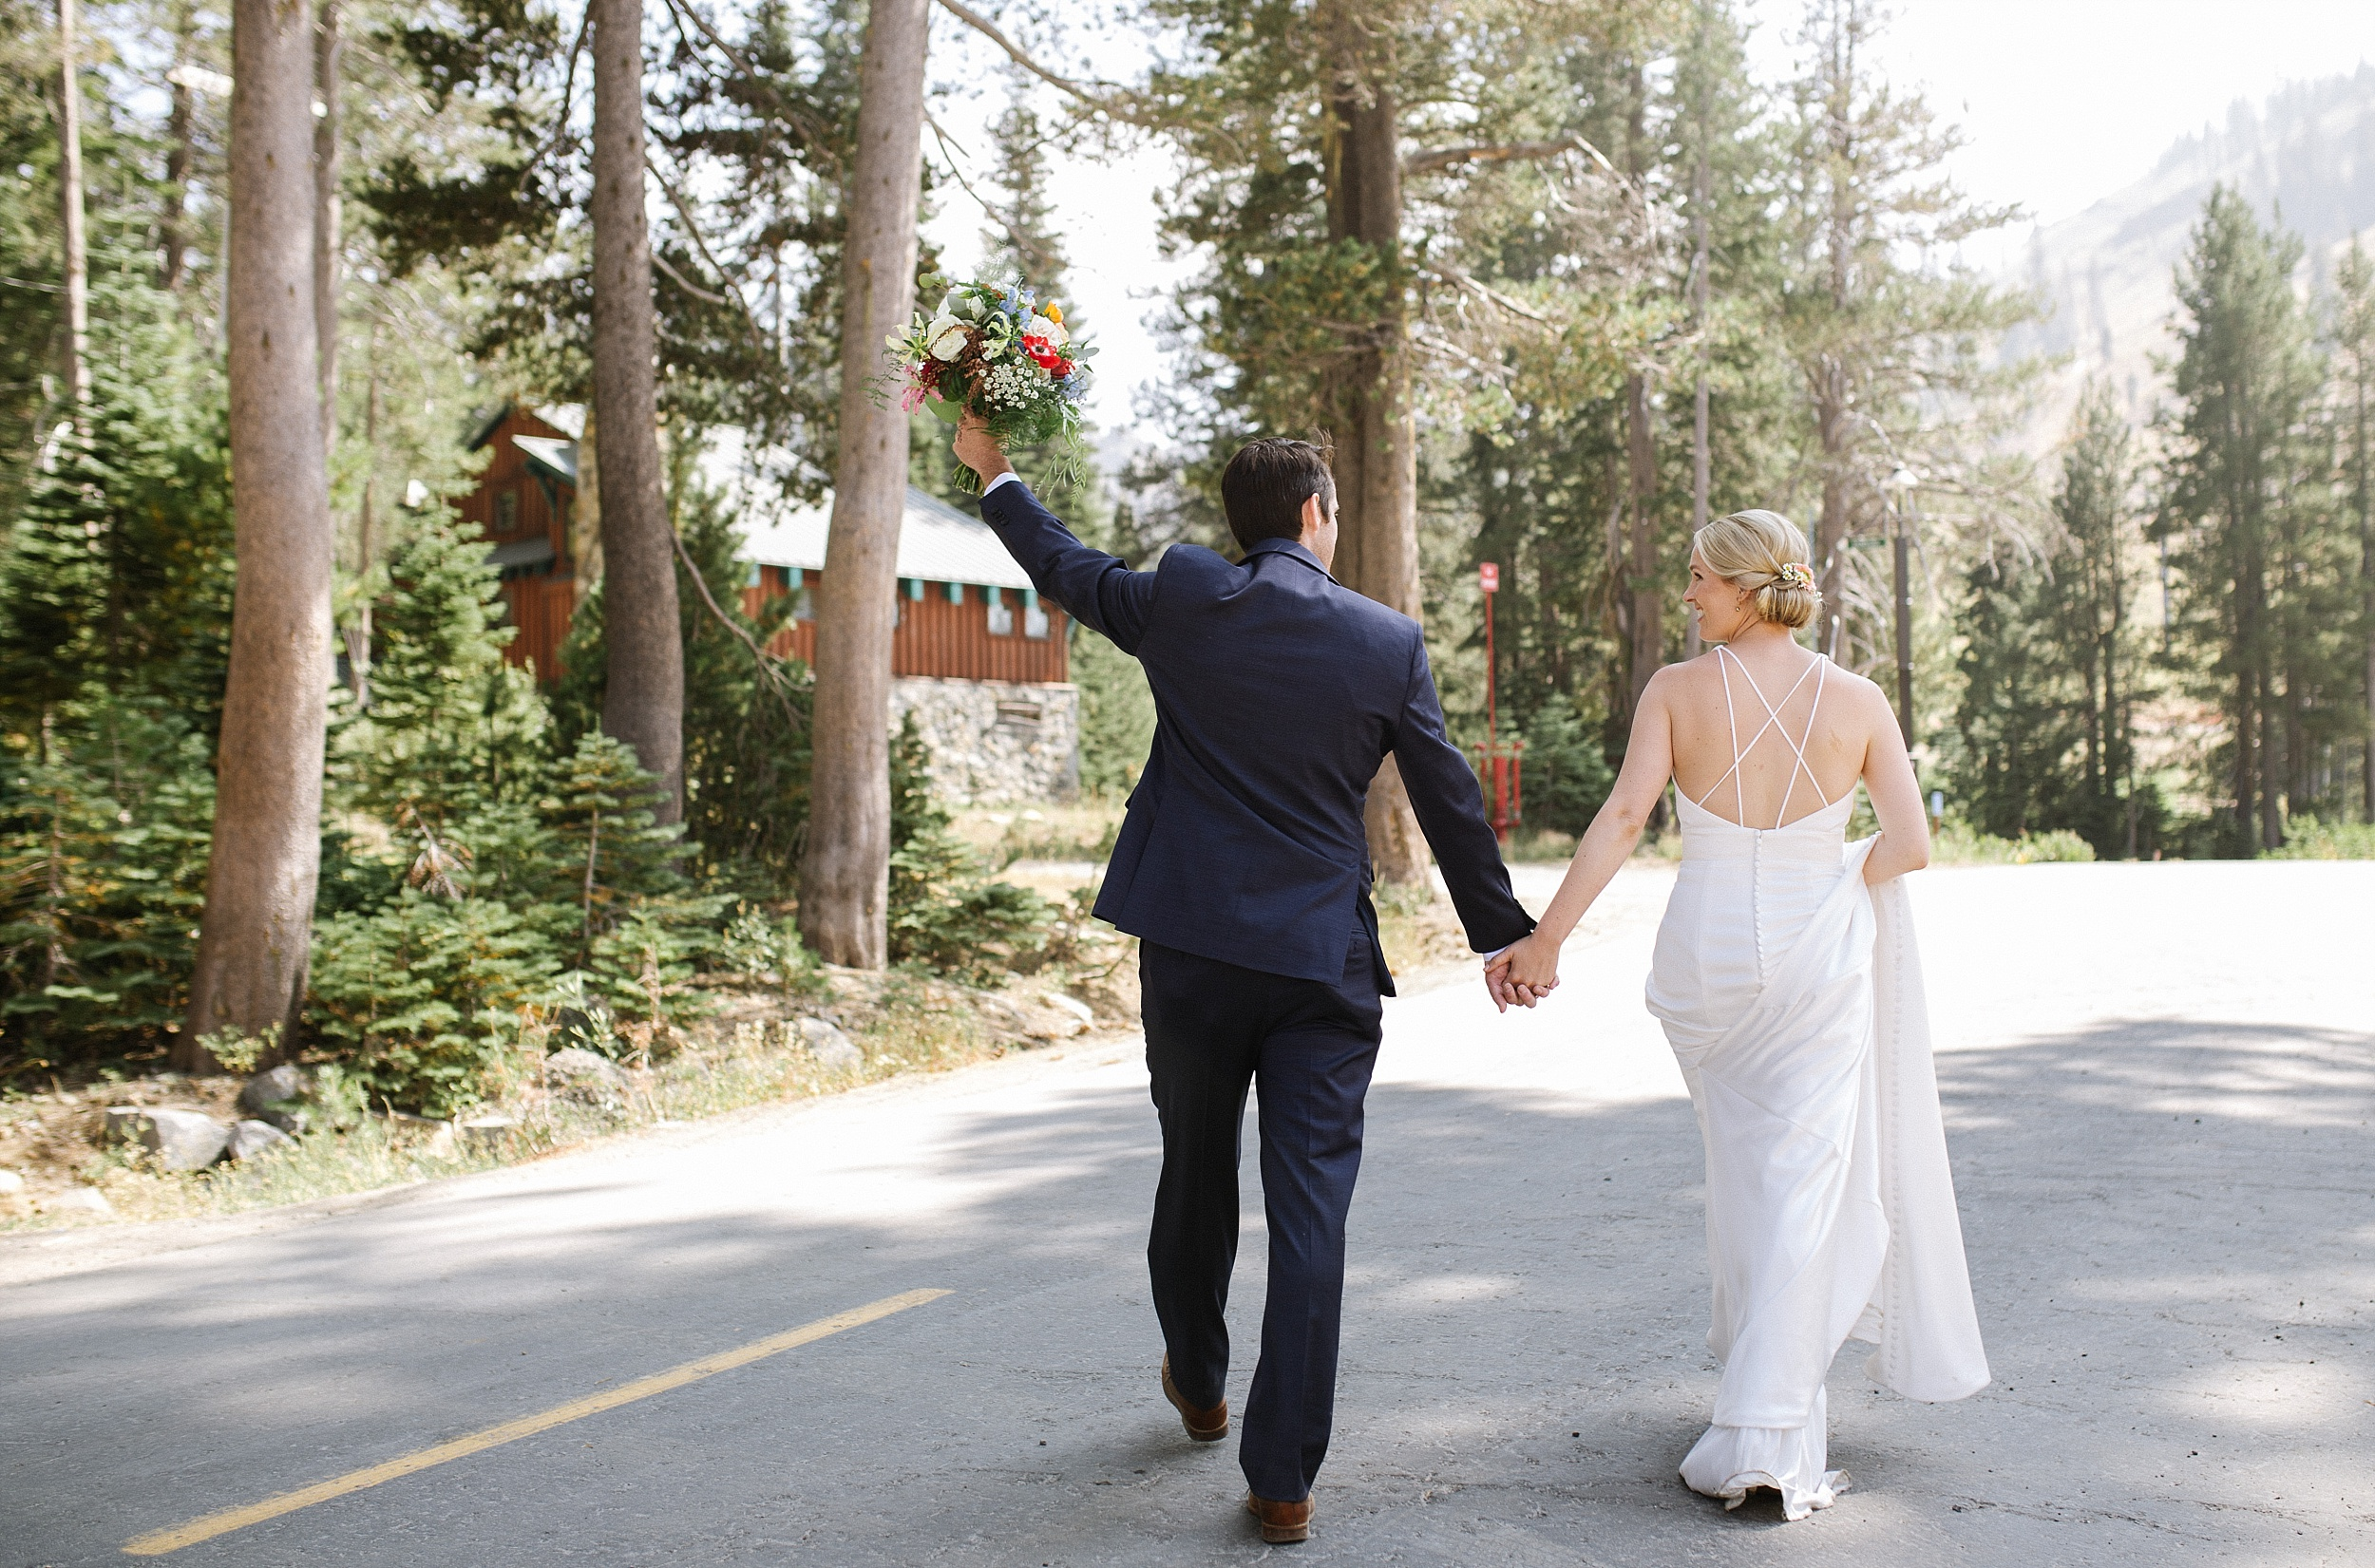 Sugar-Bowl-tahoe-wedding-sallyjohn_chelsea-dier-photography_0004.jpg